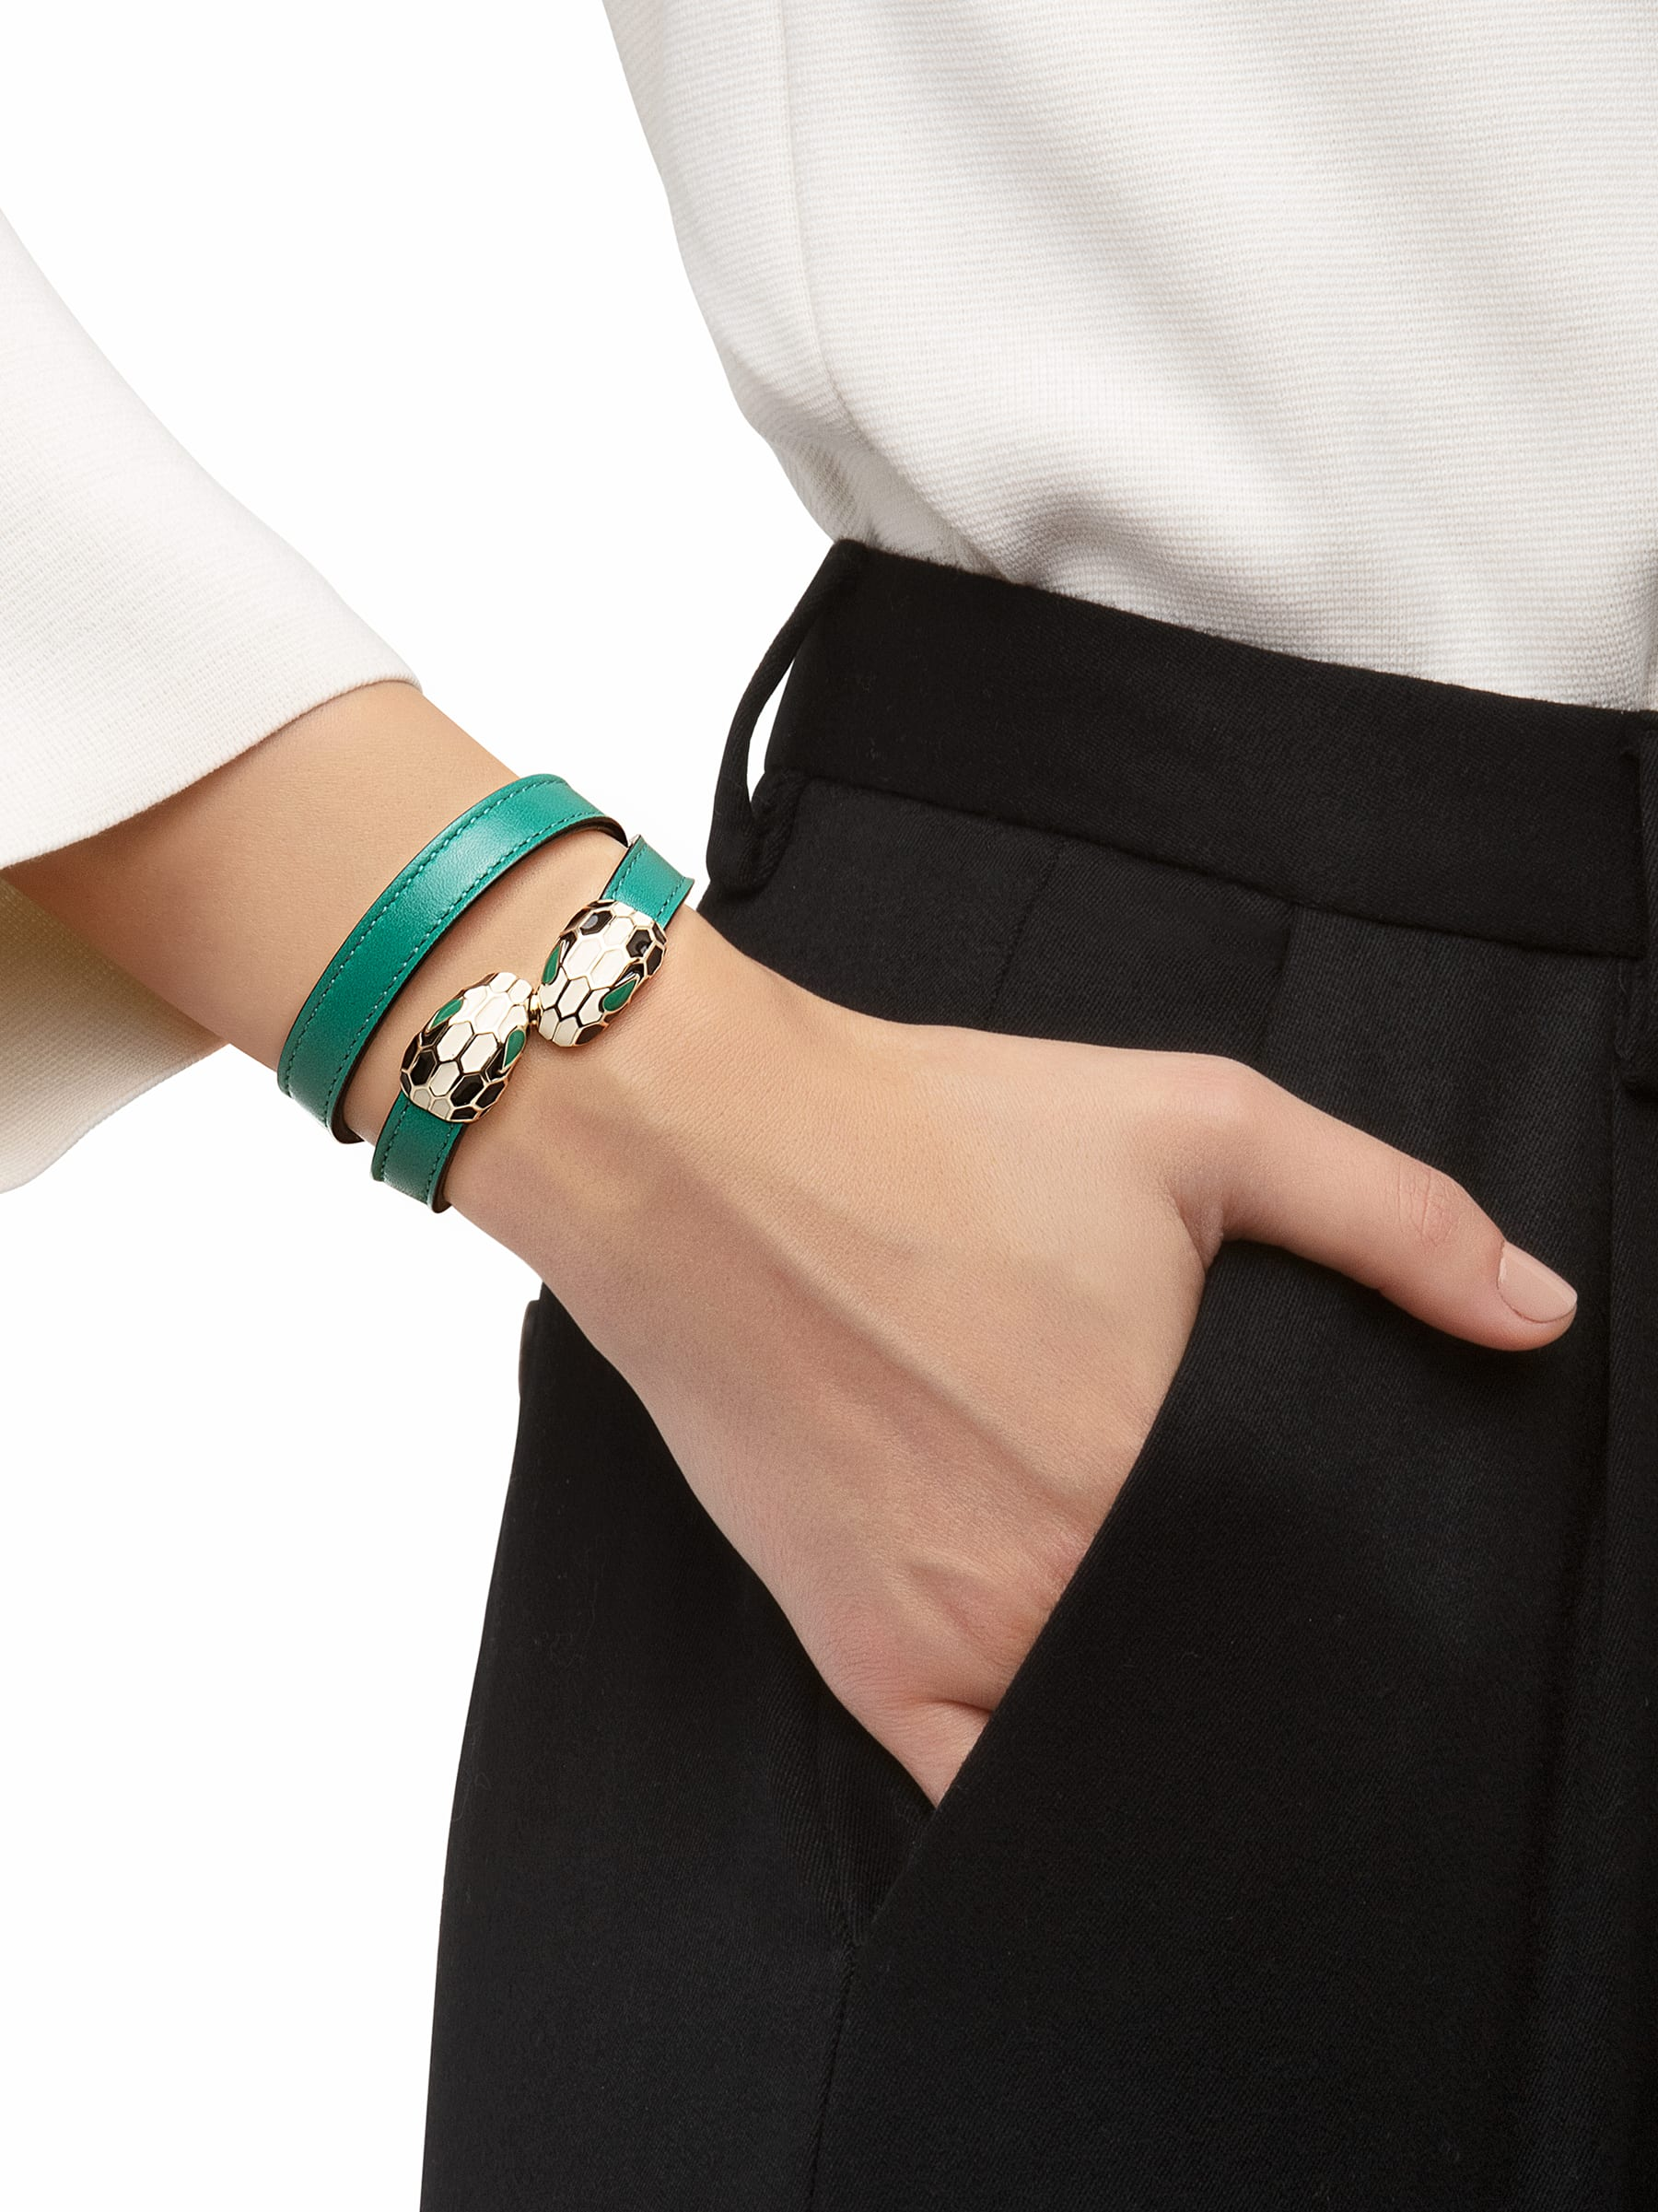 Multi-coiled bracelet in emerald green calf leather. Brass light gold plated iconic contraire Serpenti head closure in black and white enamel with malachite enamel eyes. 39997 image 2